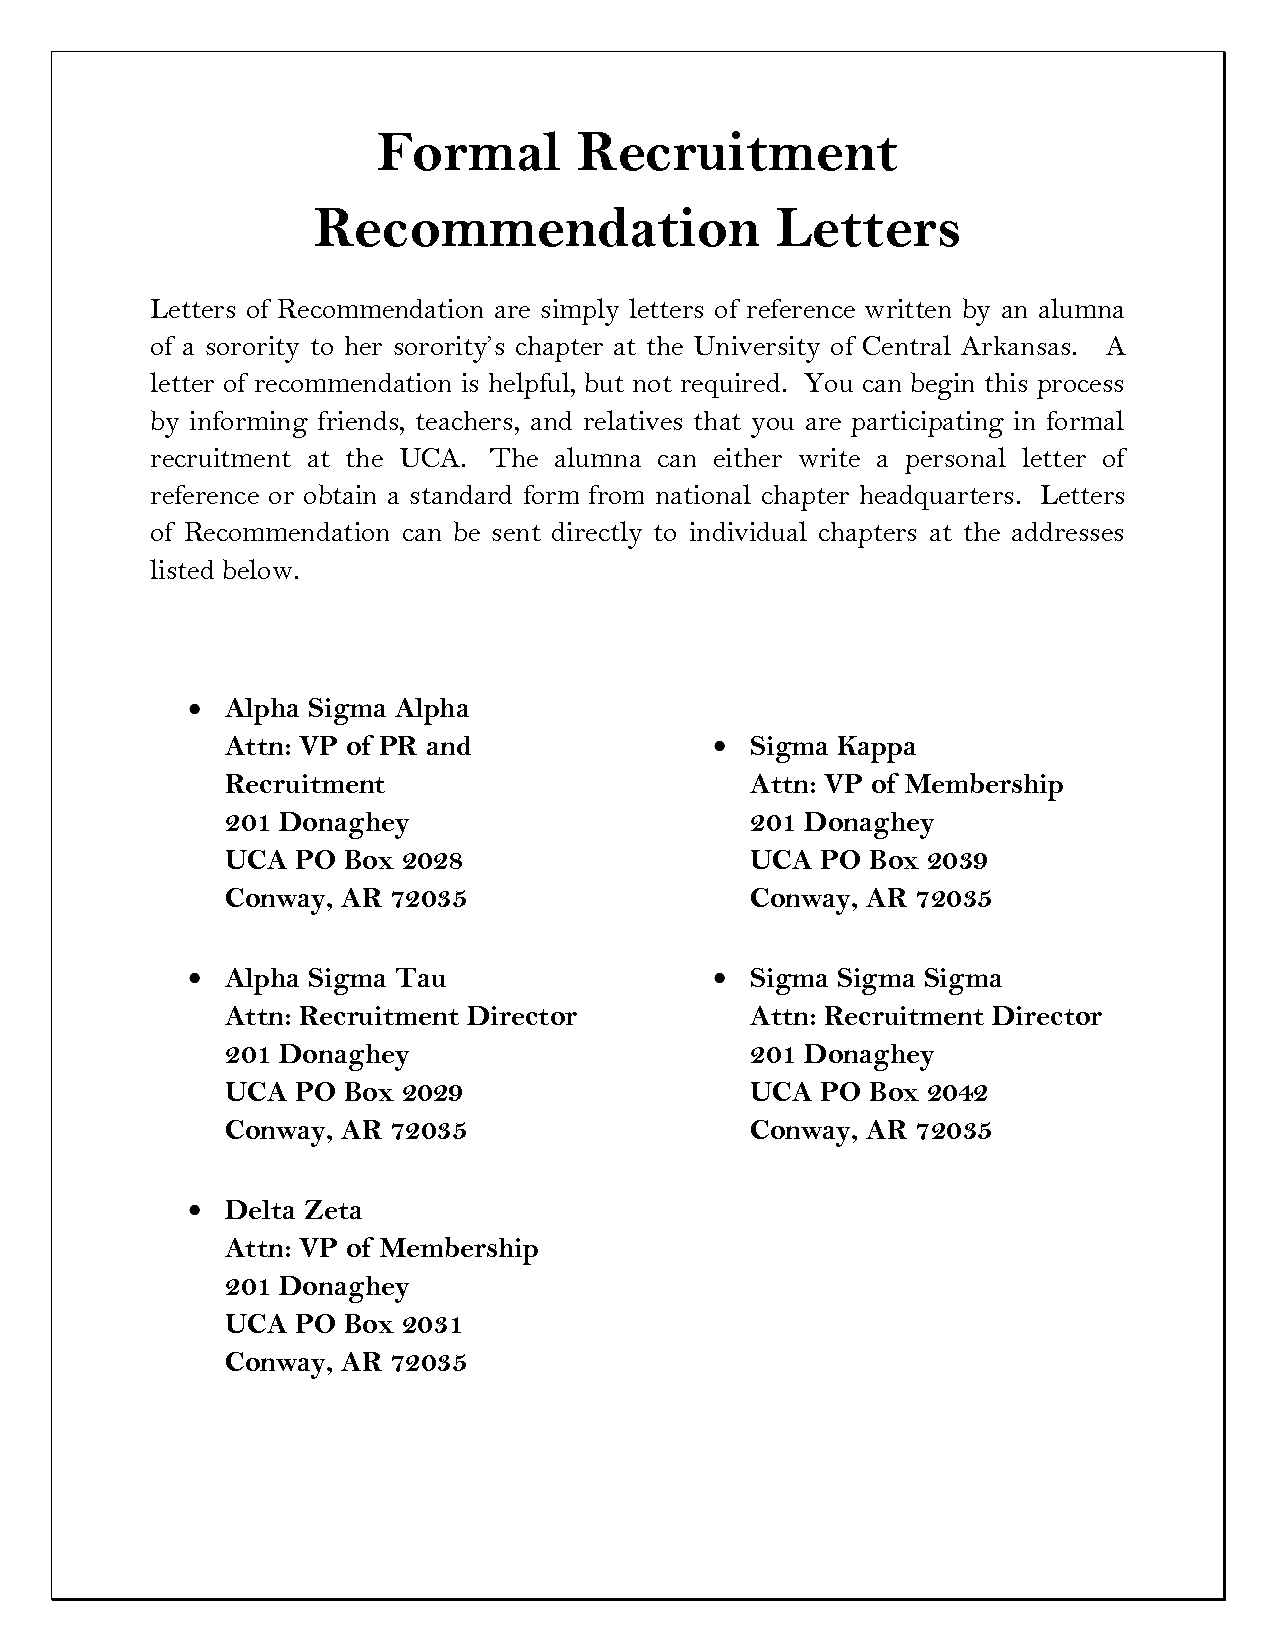 How To Write A Letter Of Recommendation For Sorority Rush 21 – Sorority Resignation Letter